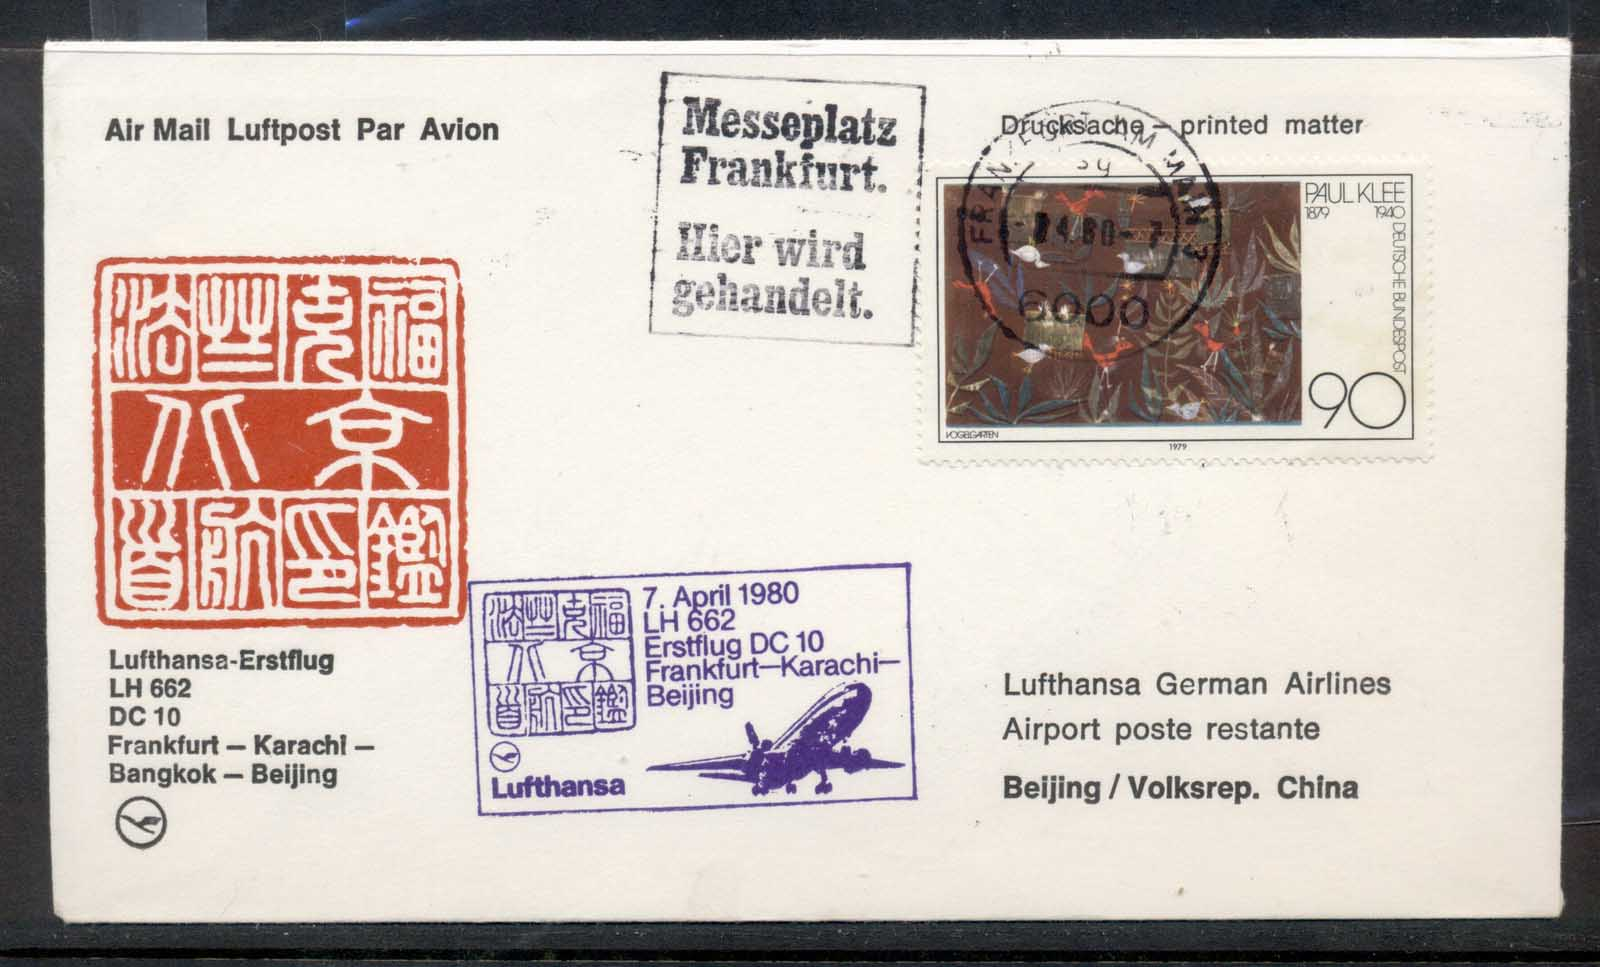 Germany 1980 First Flight DC10 Frankfurt-Karachi-Beijing cover